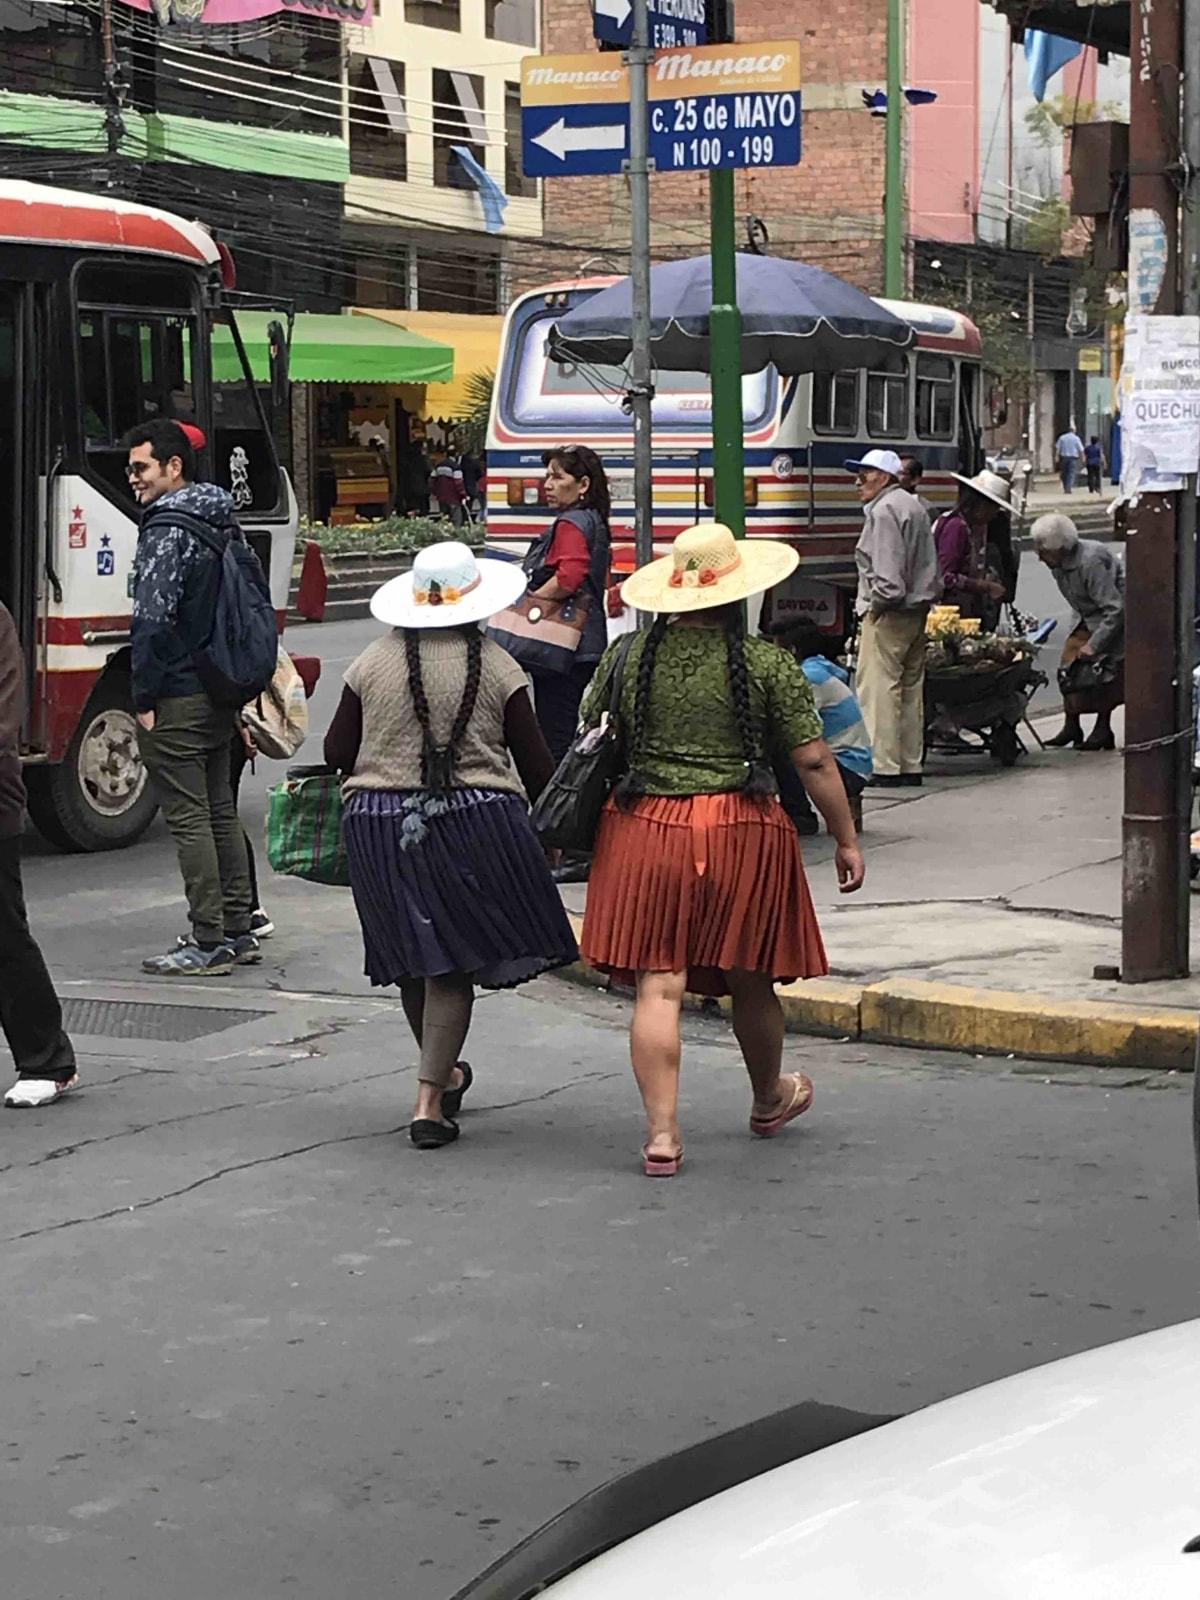 Racy cholitas in Cochabamba with their short skirts and sunhats.